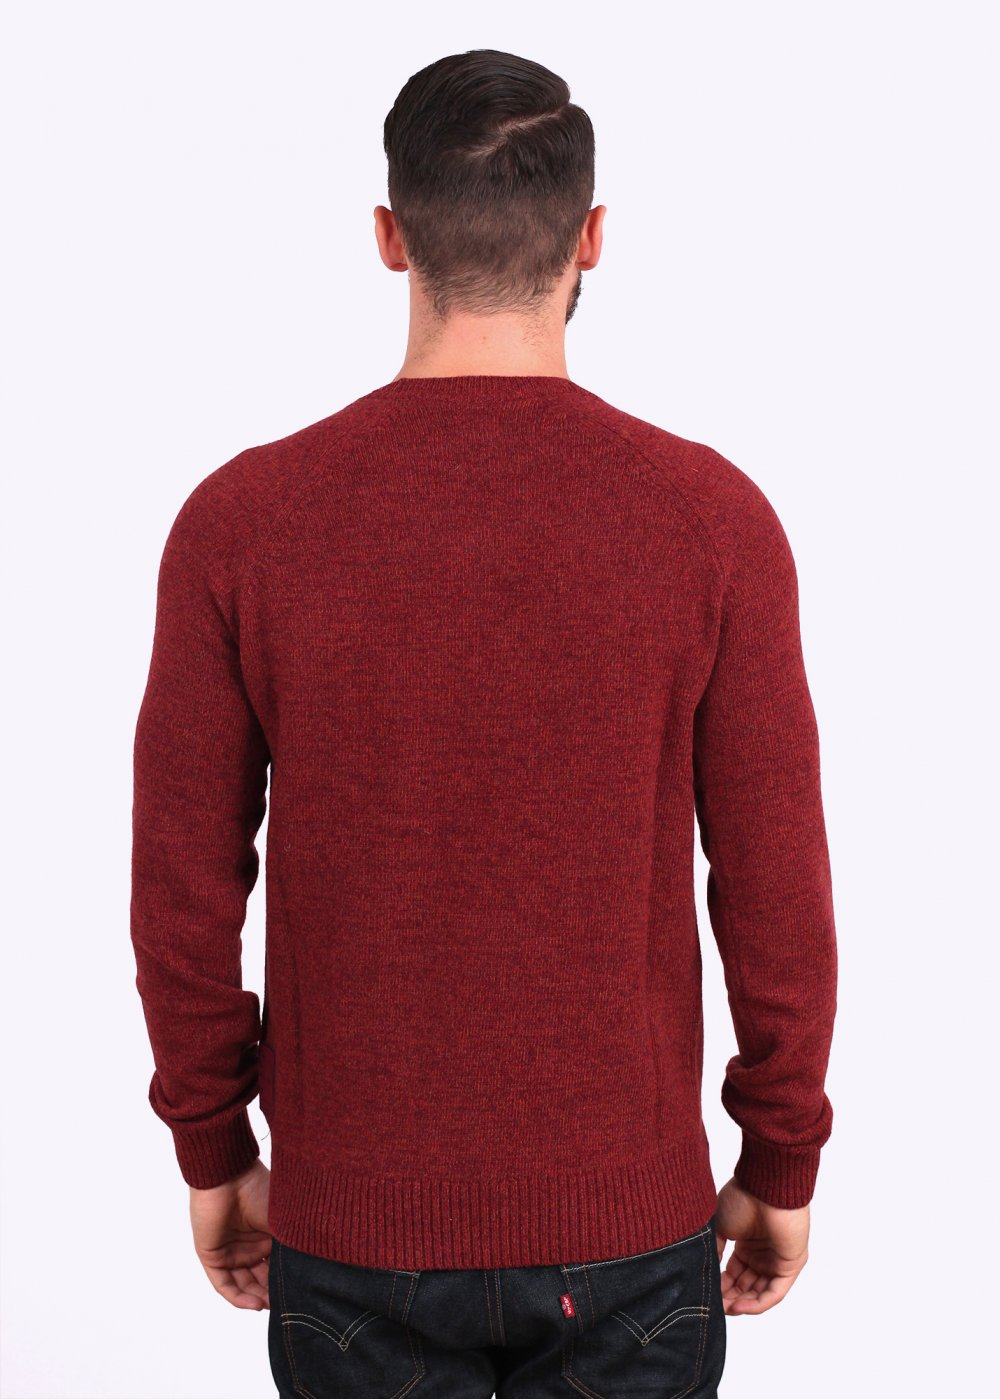 Shop the mens jumpers sale at boohooMAN for cheap knitwear. Browse distressed jumpers, crew and roll neck styles and cheap mens cardigans.